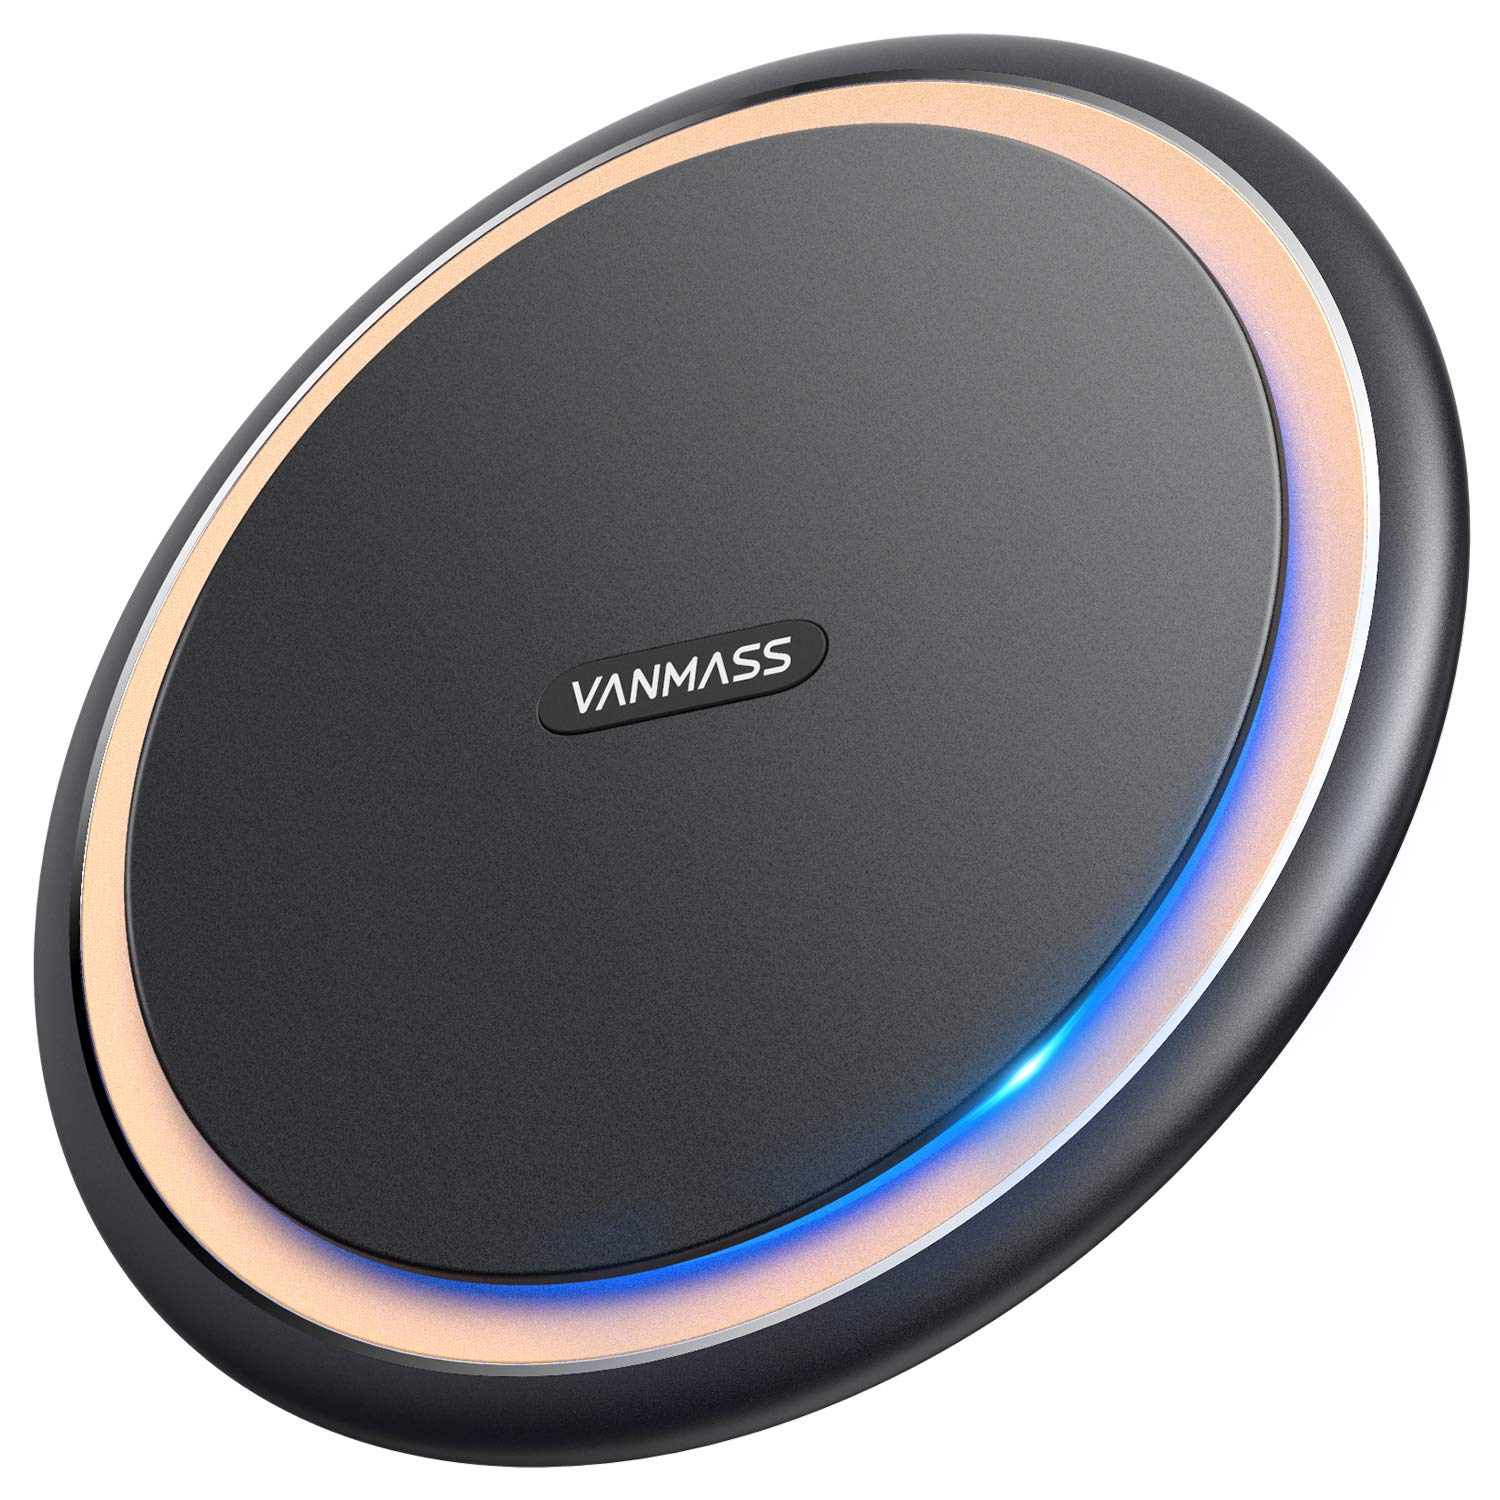 Wireless Charger, VANMASS 15W/10W/7.5W/5W Qi-Certified Wireless Charging Pad